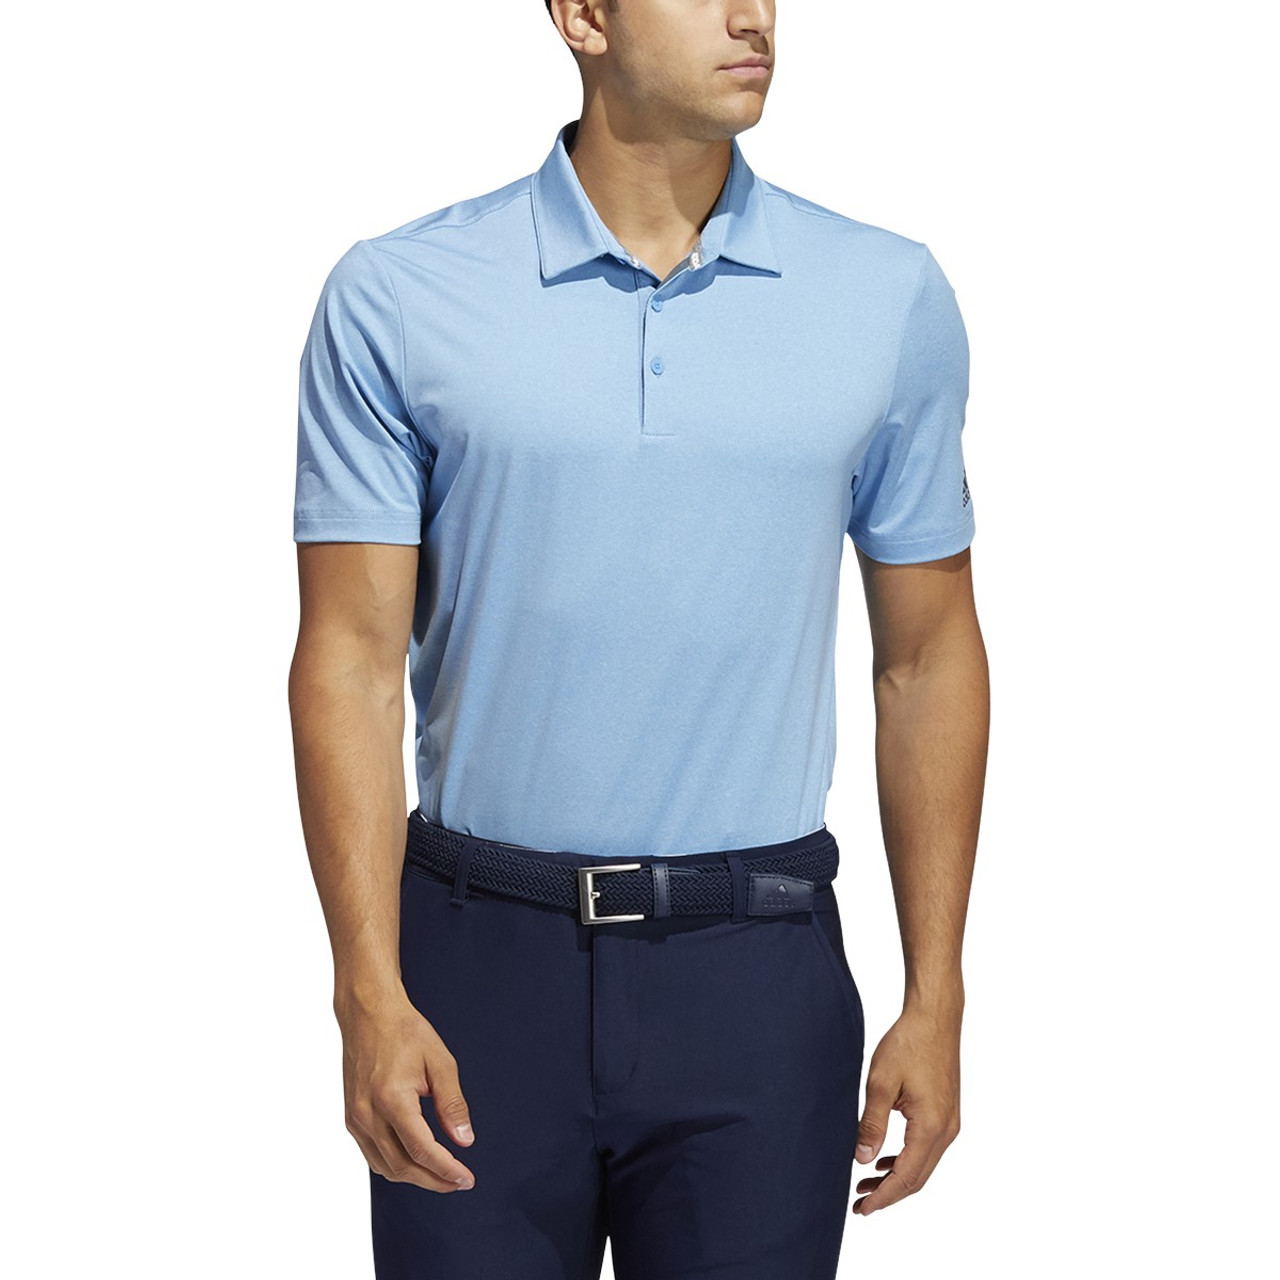 Adidas Ultimate 365 2.0 Heather Polo - Light Blue